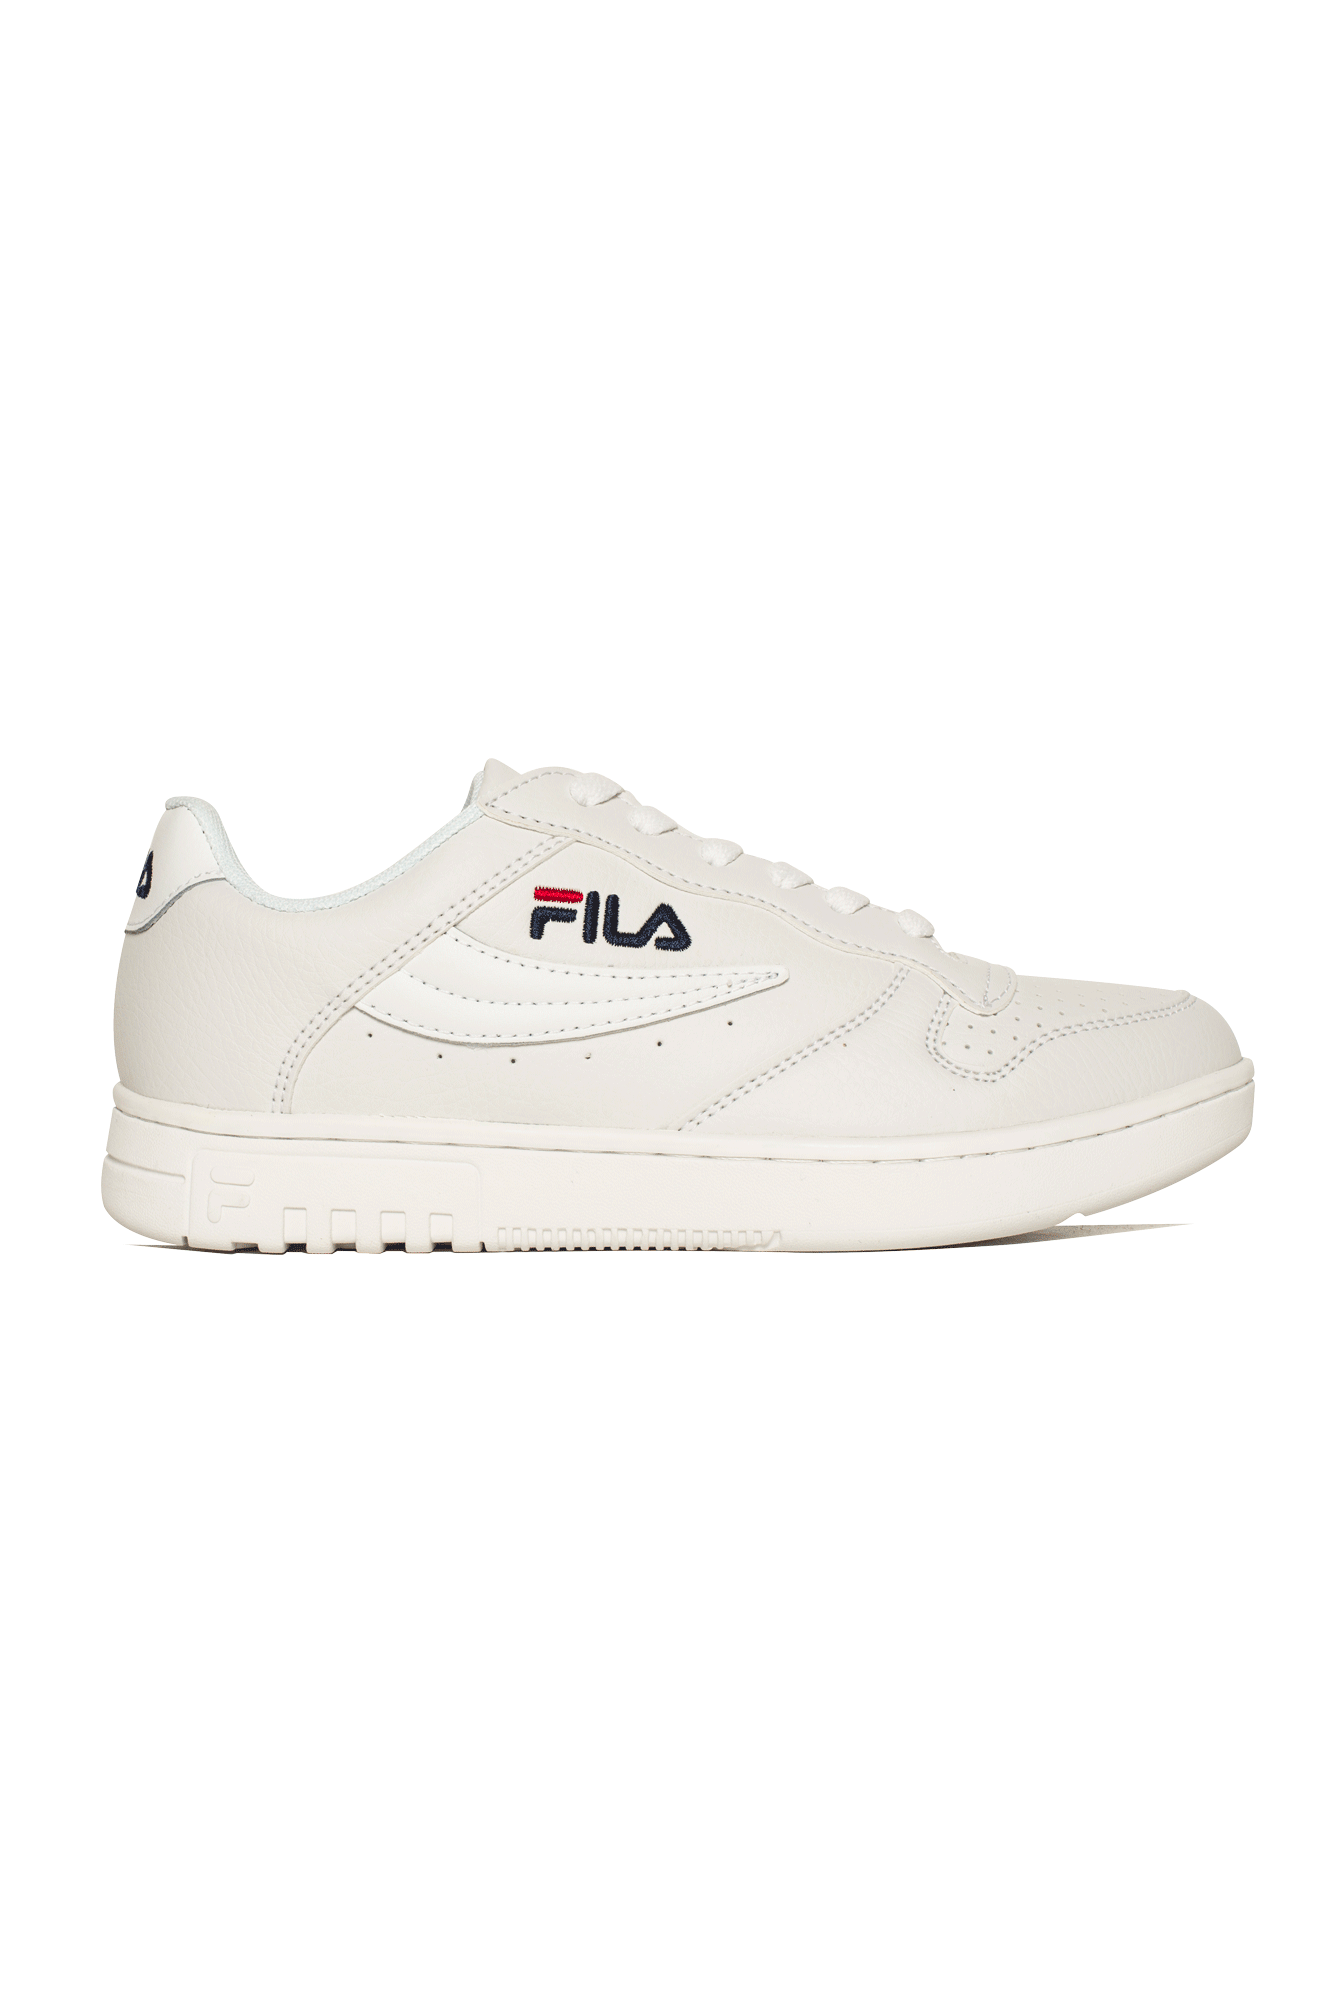 Fila Sneakers FX-100 Low WMN White 1010047#000#1FG#5,5 - One Block Down